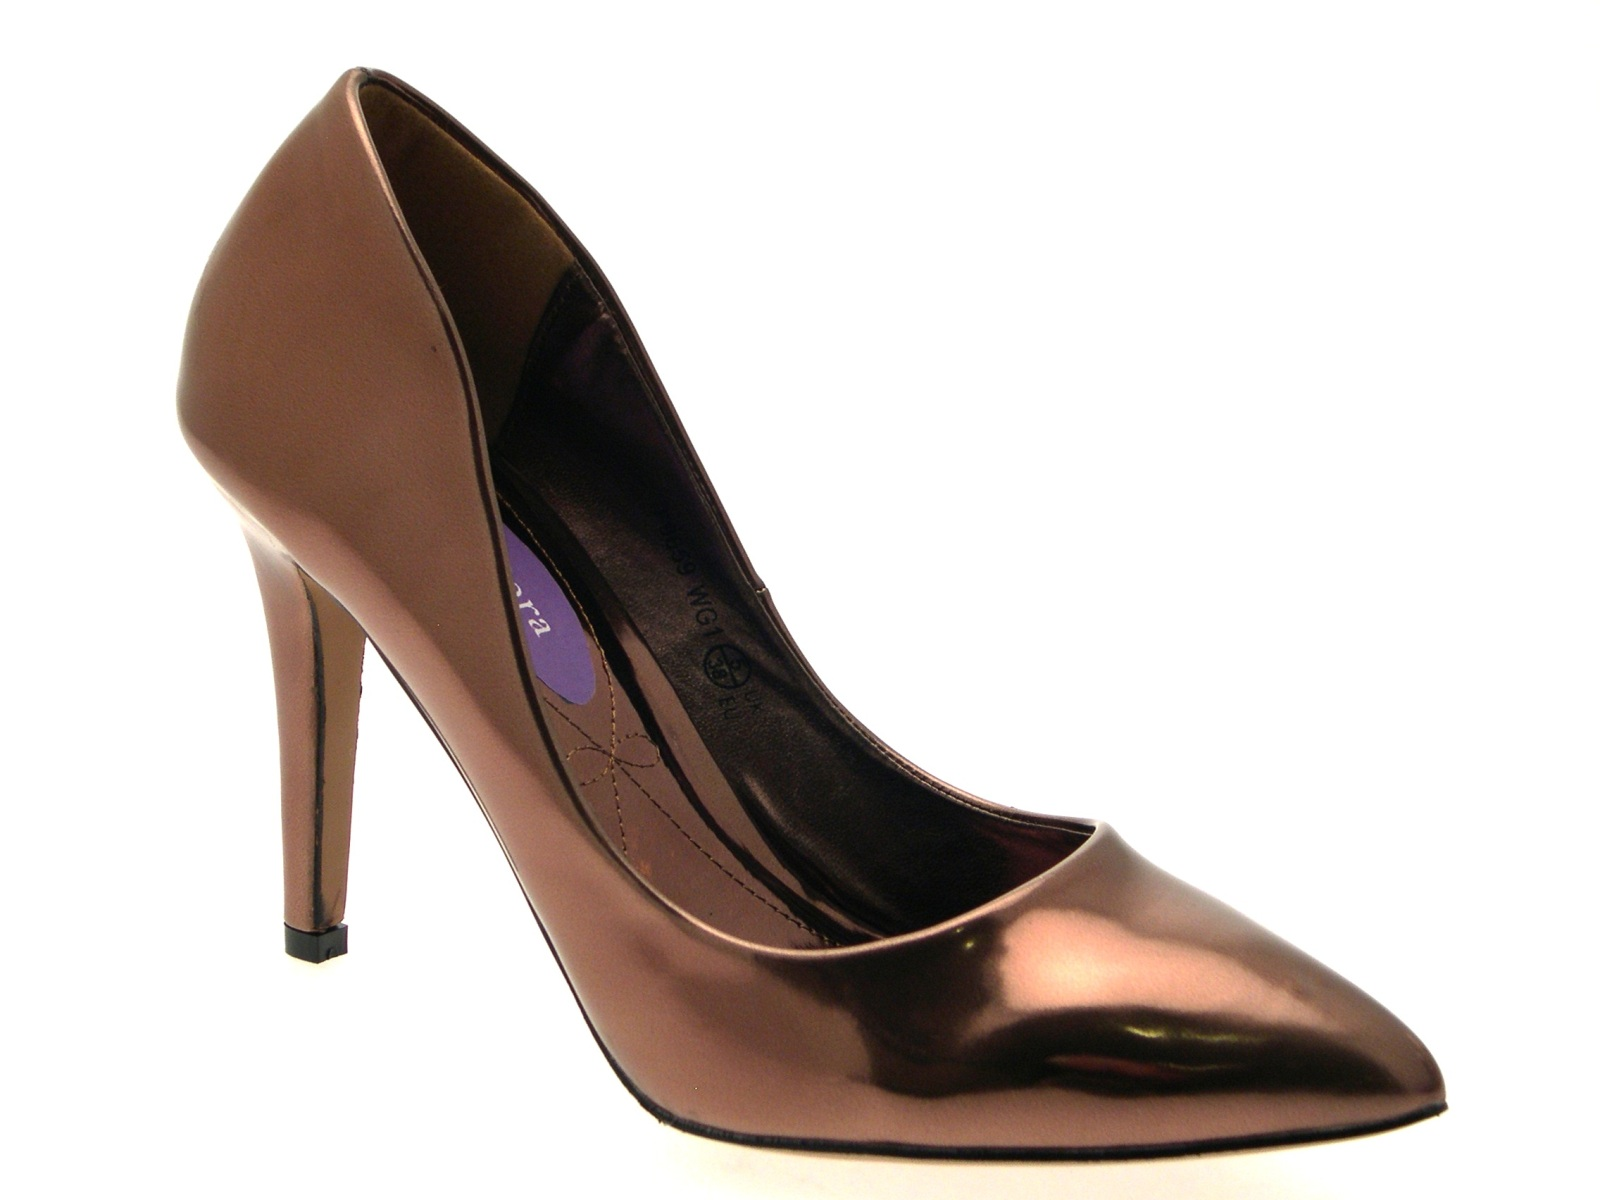 Womens-Metallic-Pointed-Toe-Court-Stiletto-High-Heels-Ladies-Work-Office-Shoes thumbnail 6